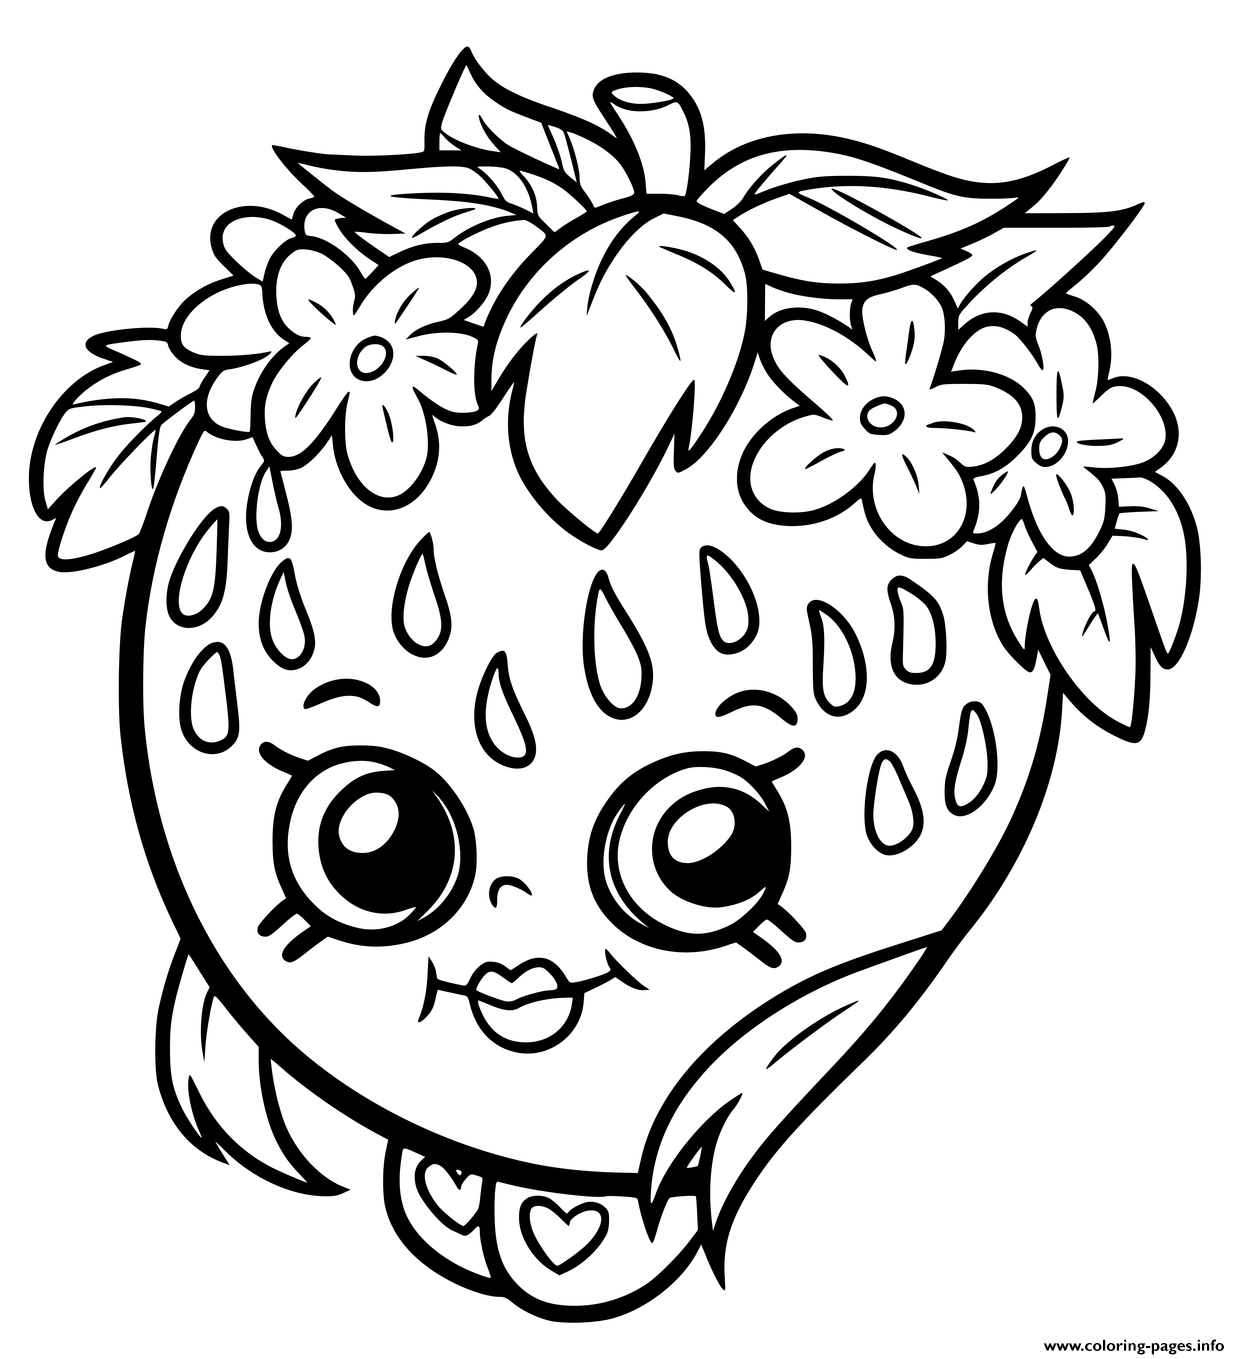 Impeccable image throughout shopkins printable coloring pages